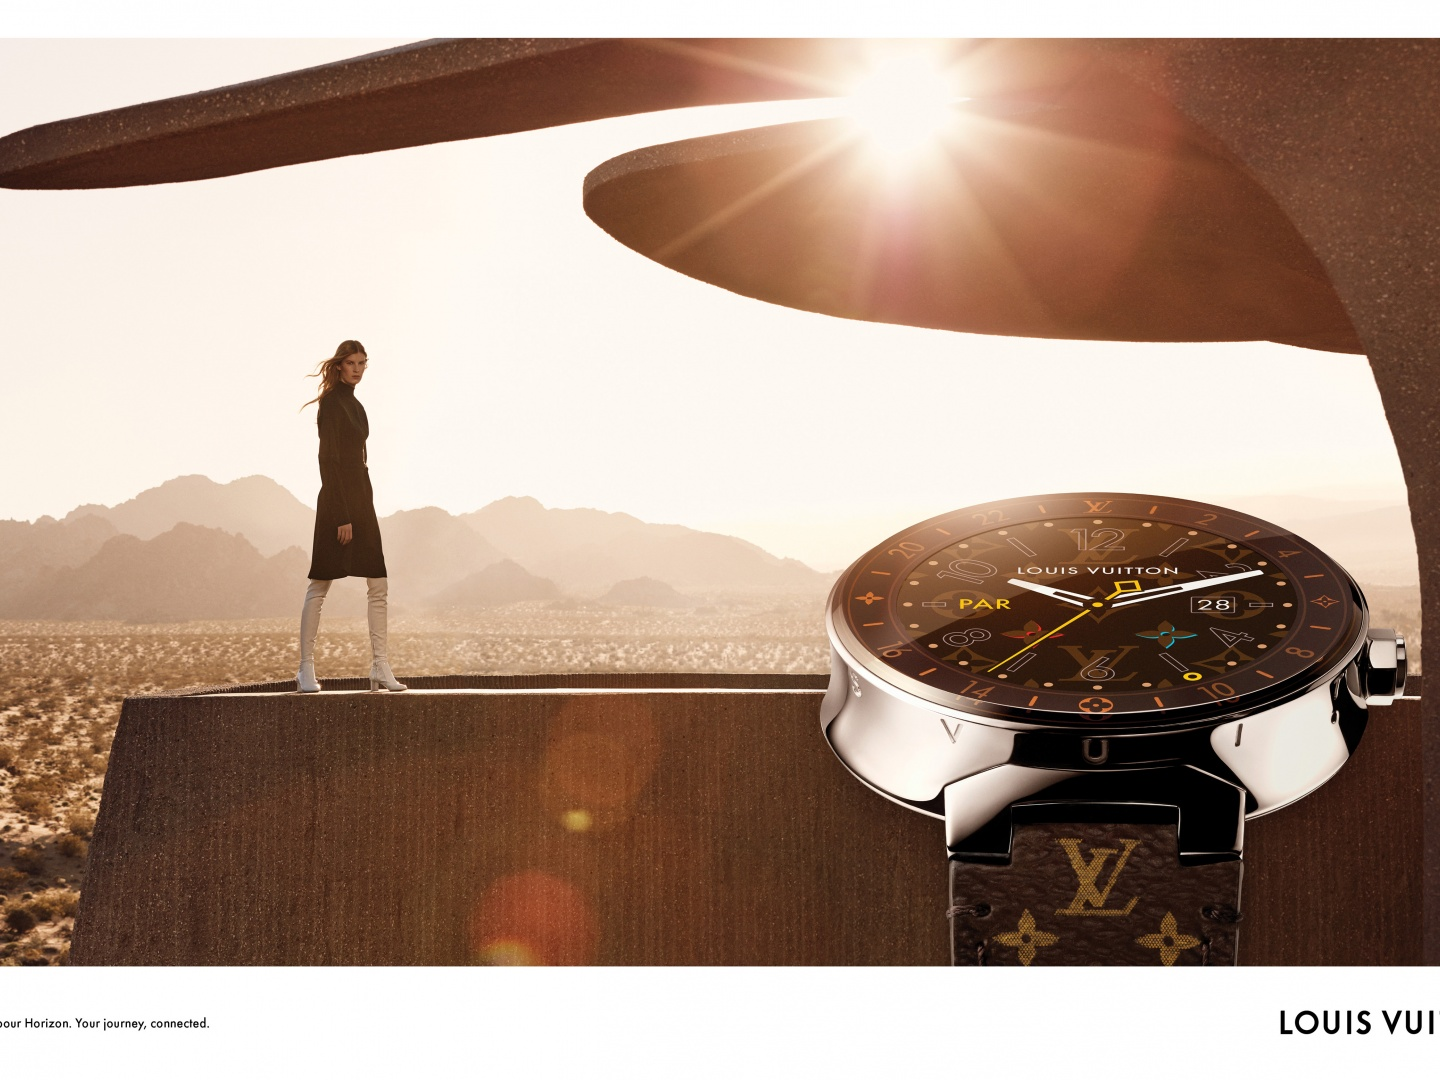 Tambour Horizon - Connected Journeys Campaign Thumbnail